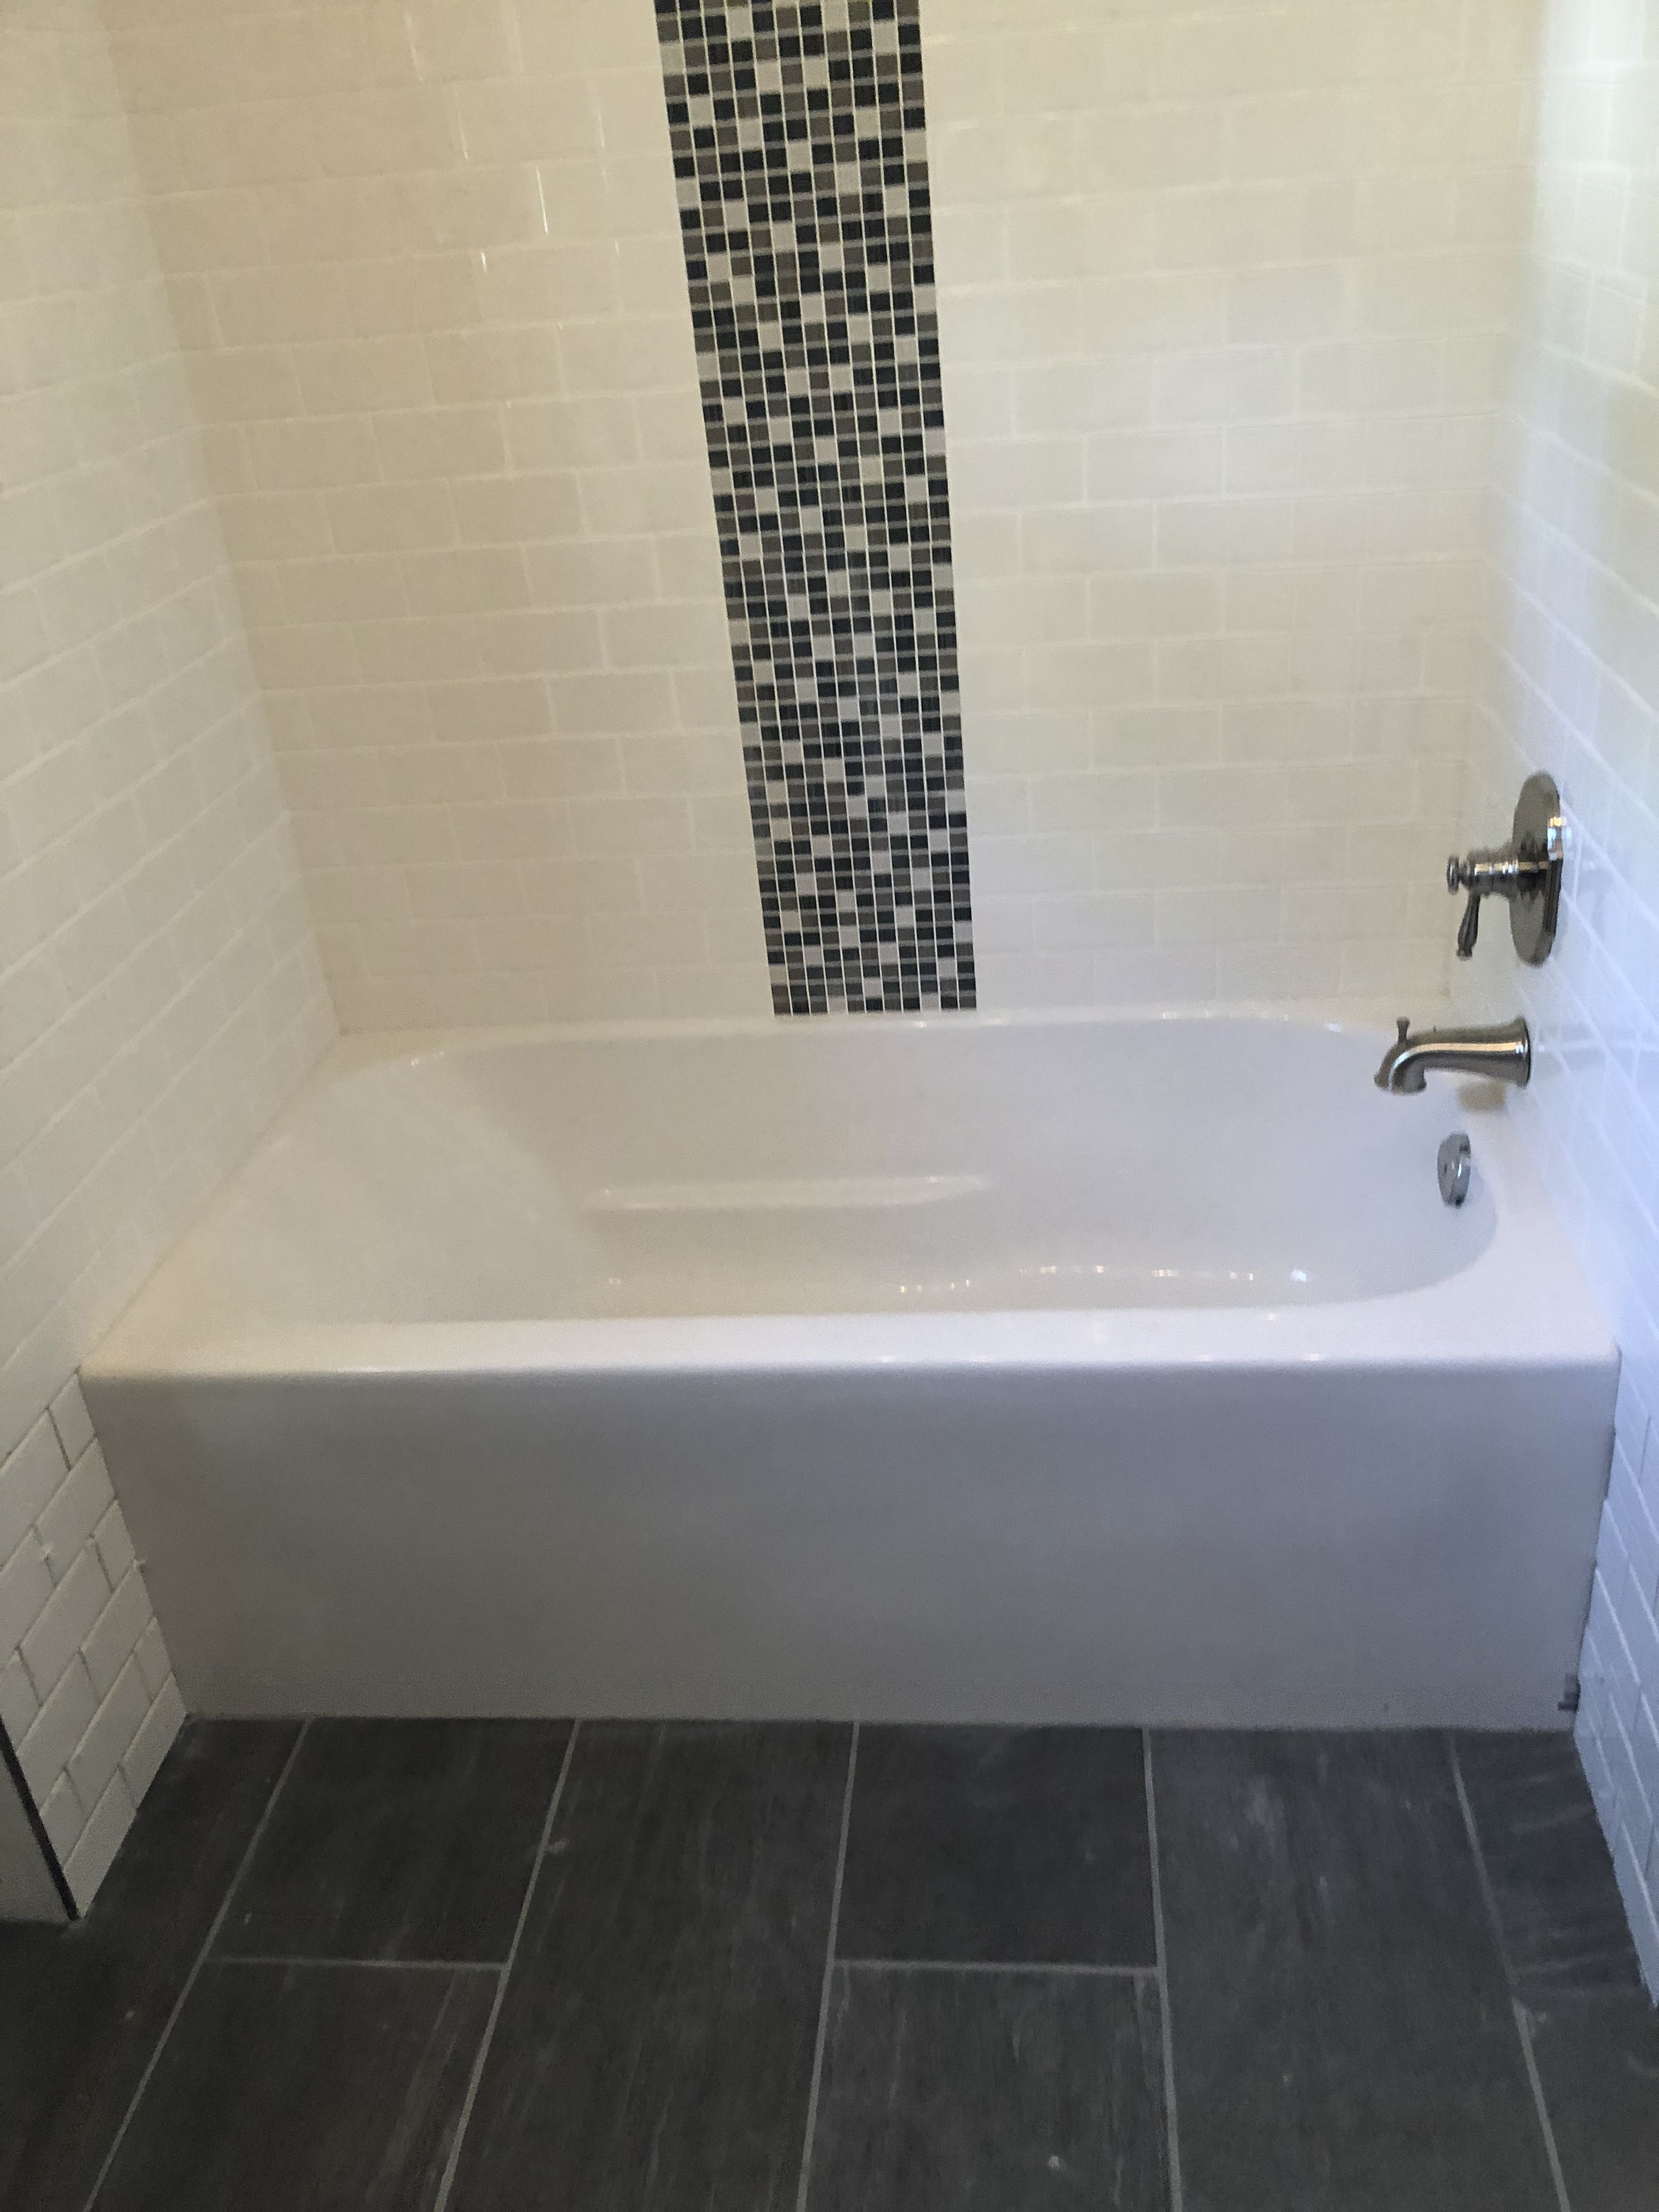 white subway tile with accent waterfall waterfall tile layout in rh pinterest com